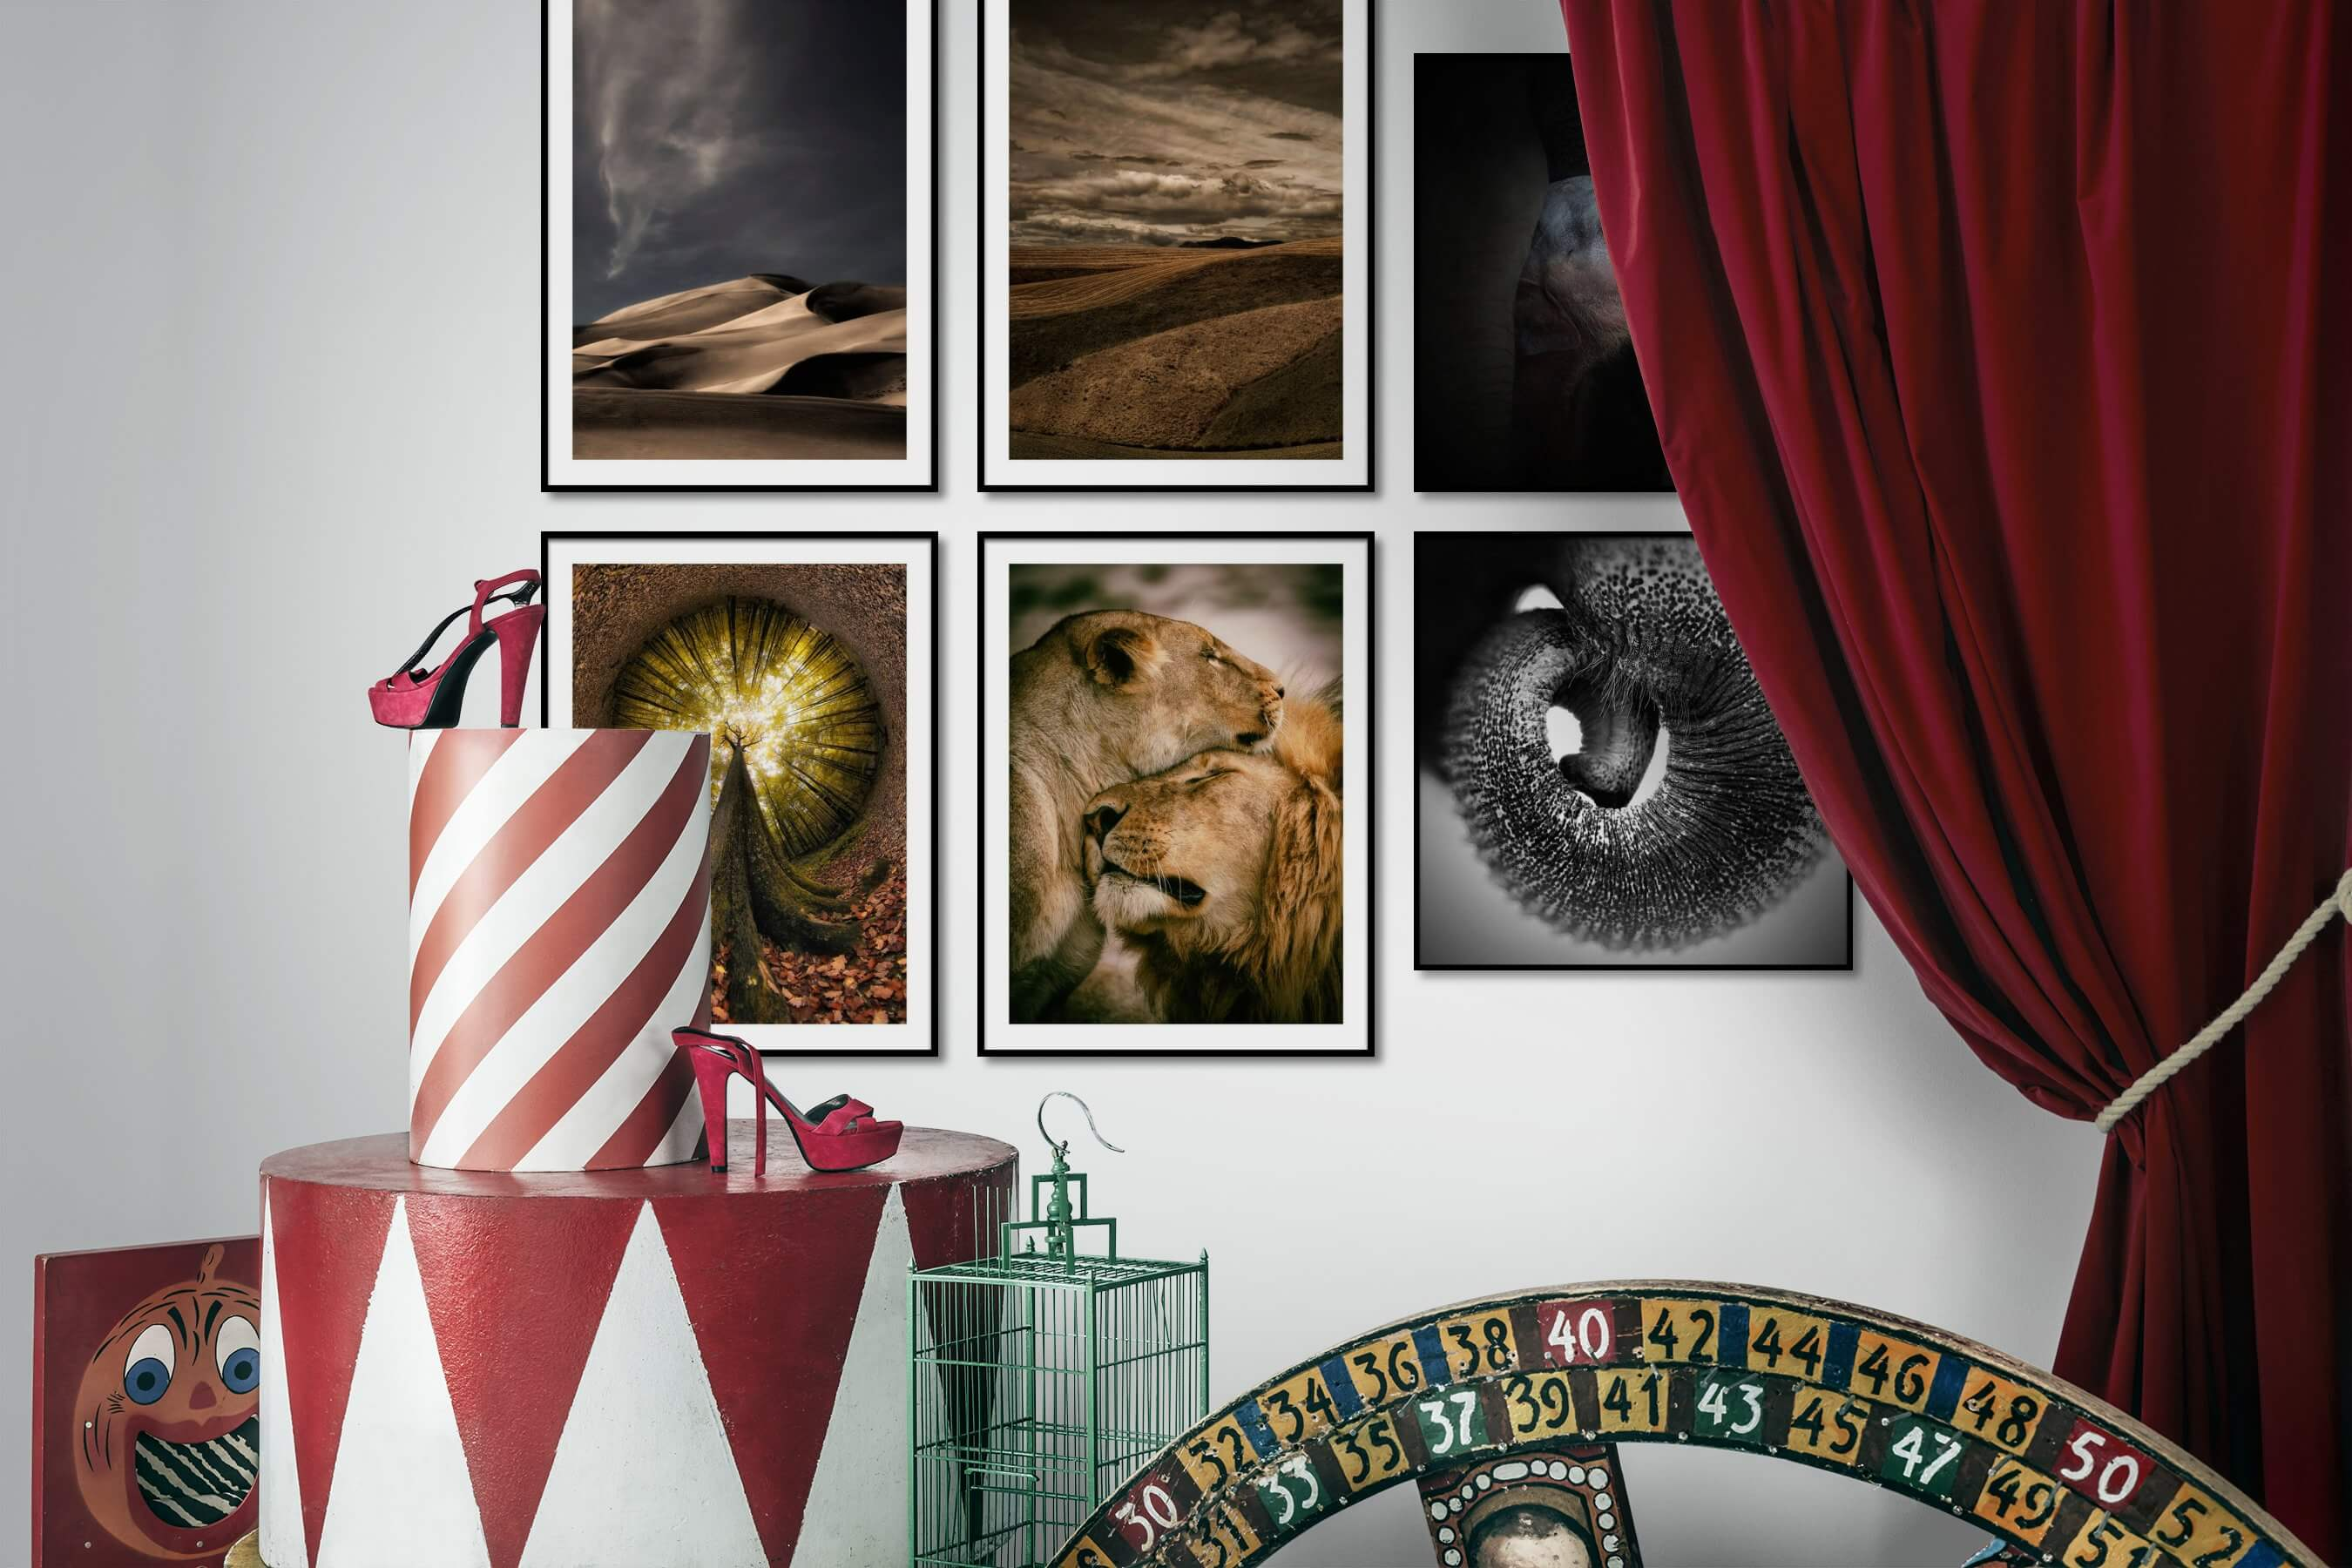 Gallery wall idea with six framed pictures arranged on a wall depicting For the Moderate, Nature, Country Life, For the Maximalist, Animals, and Black & White